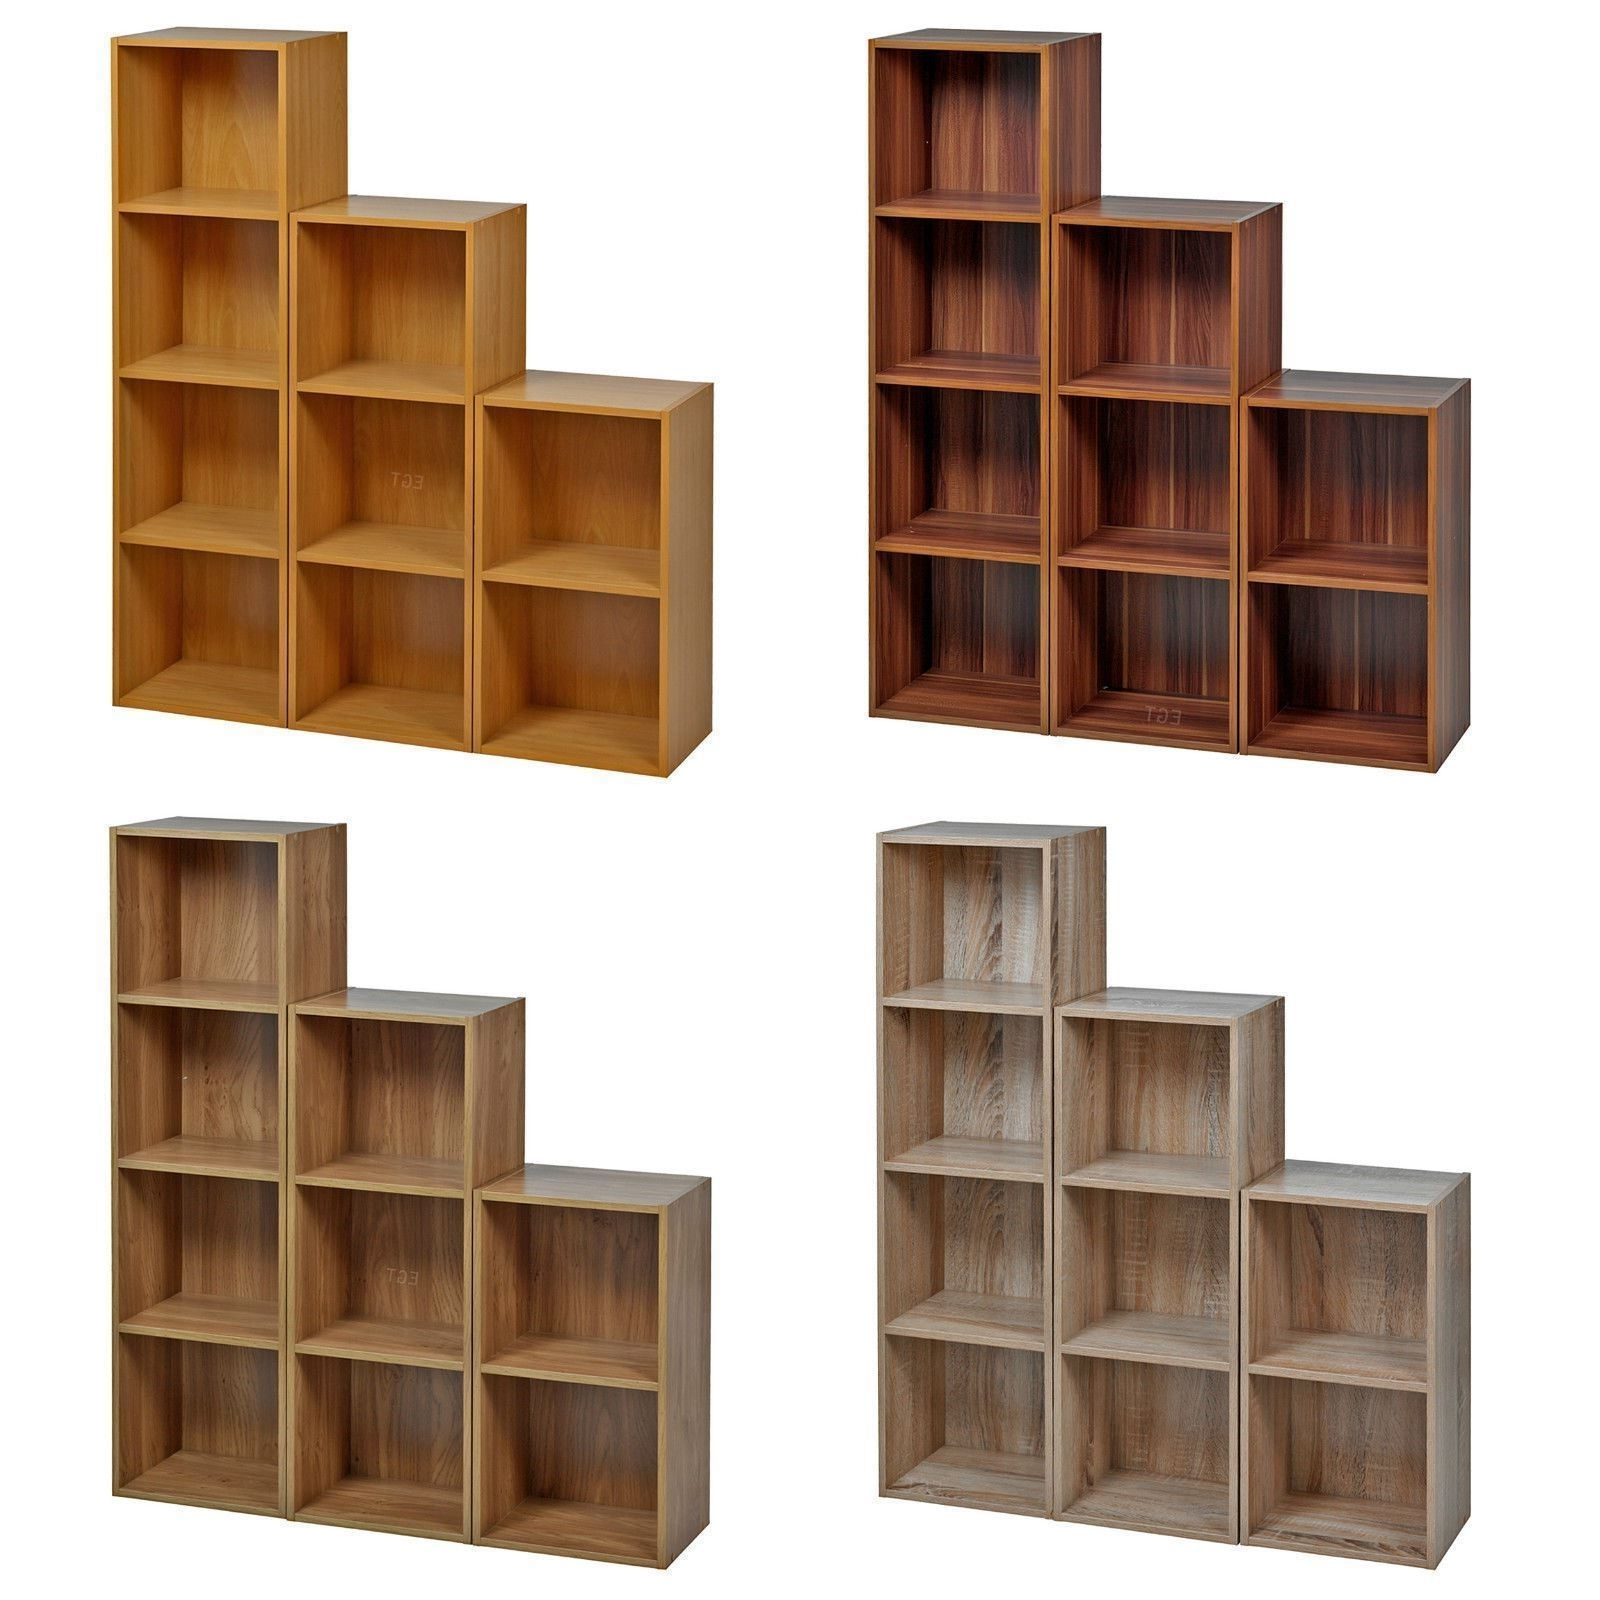 2017 Wooden Bookcases With Regard To 2 4 Tier Wooden Bookcase Shelving Bookshelf Storage Furniture Cube (View 11 of 15)